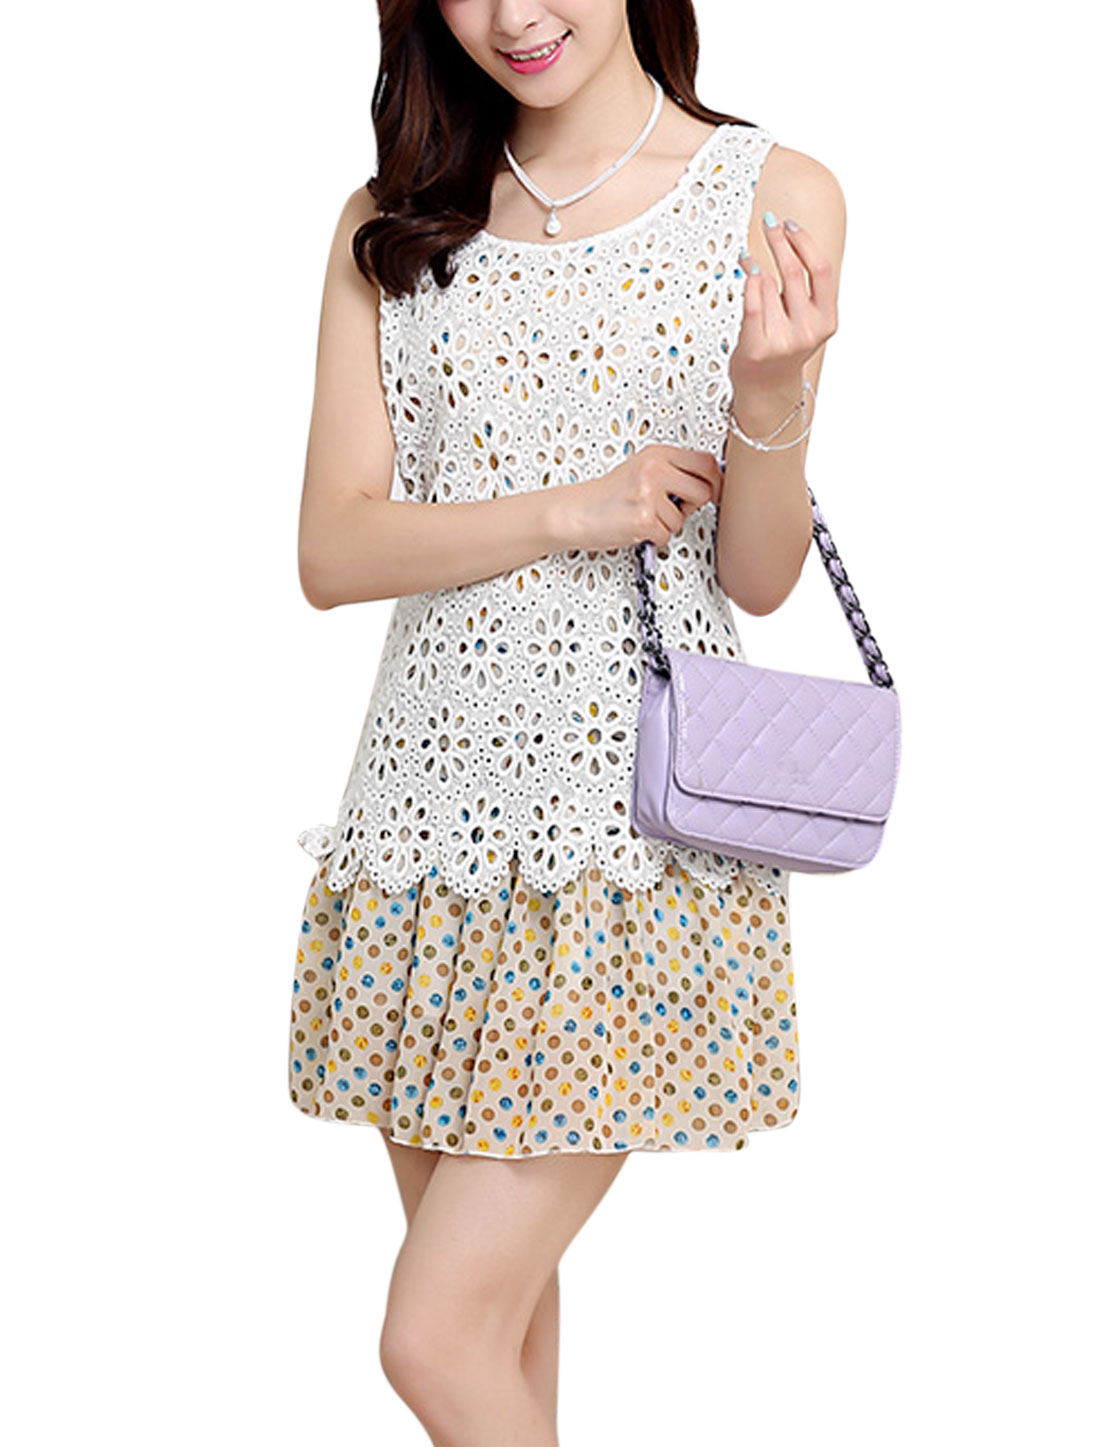 Lady Sleeveless Dots Prints Layered Design Dress White Blue M